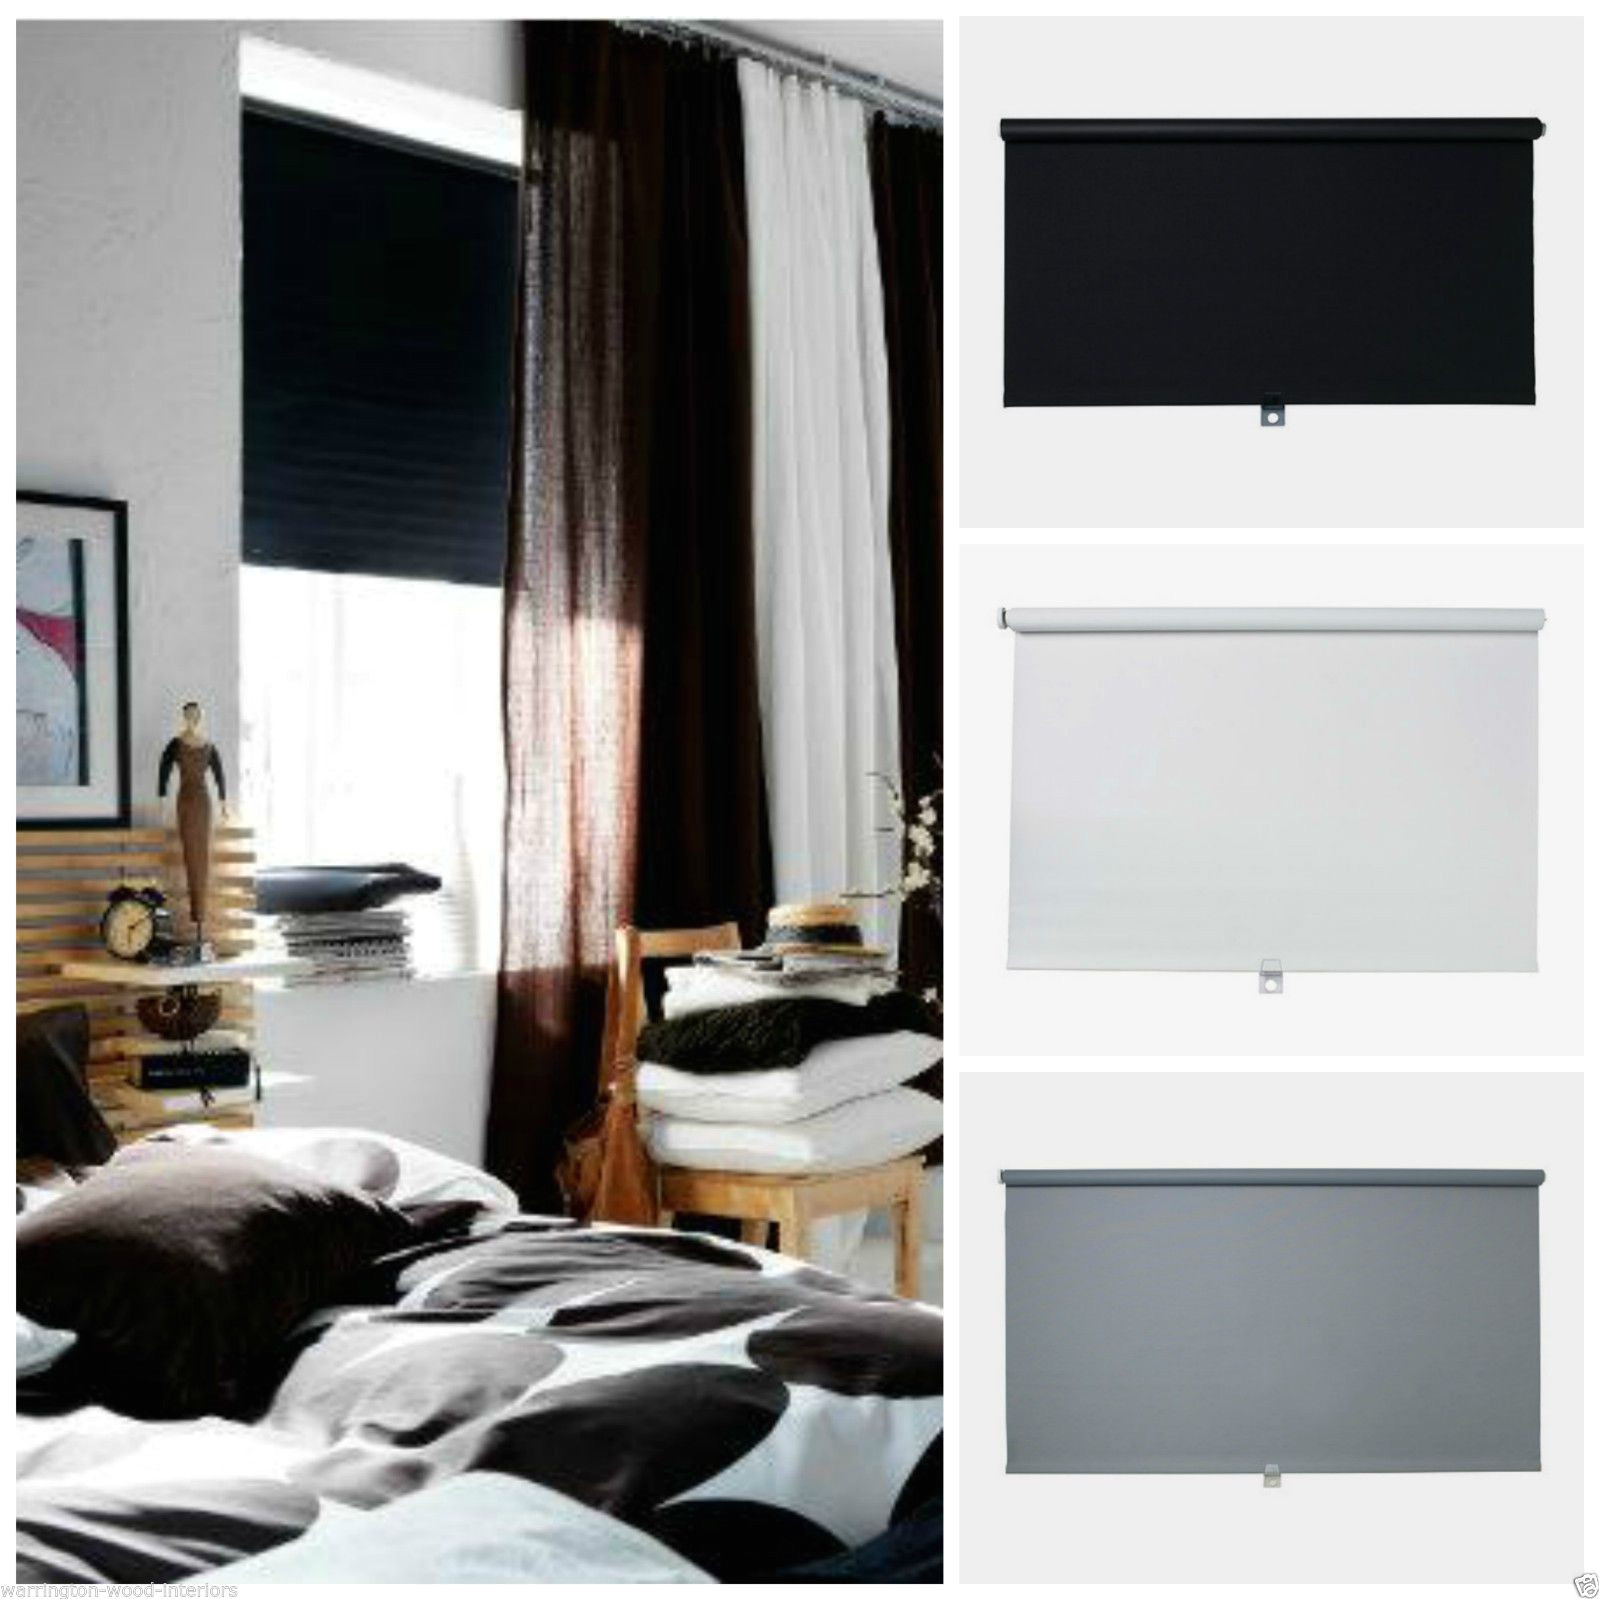 Noise Reducing Curtains Ikea Uk Ikea A Tupplur A Blackout Blind A Black White or Grey A New